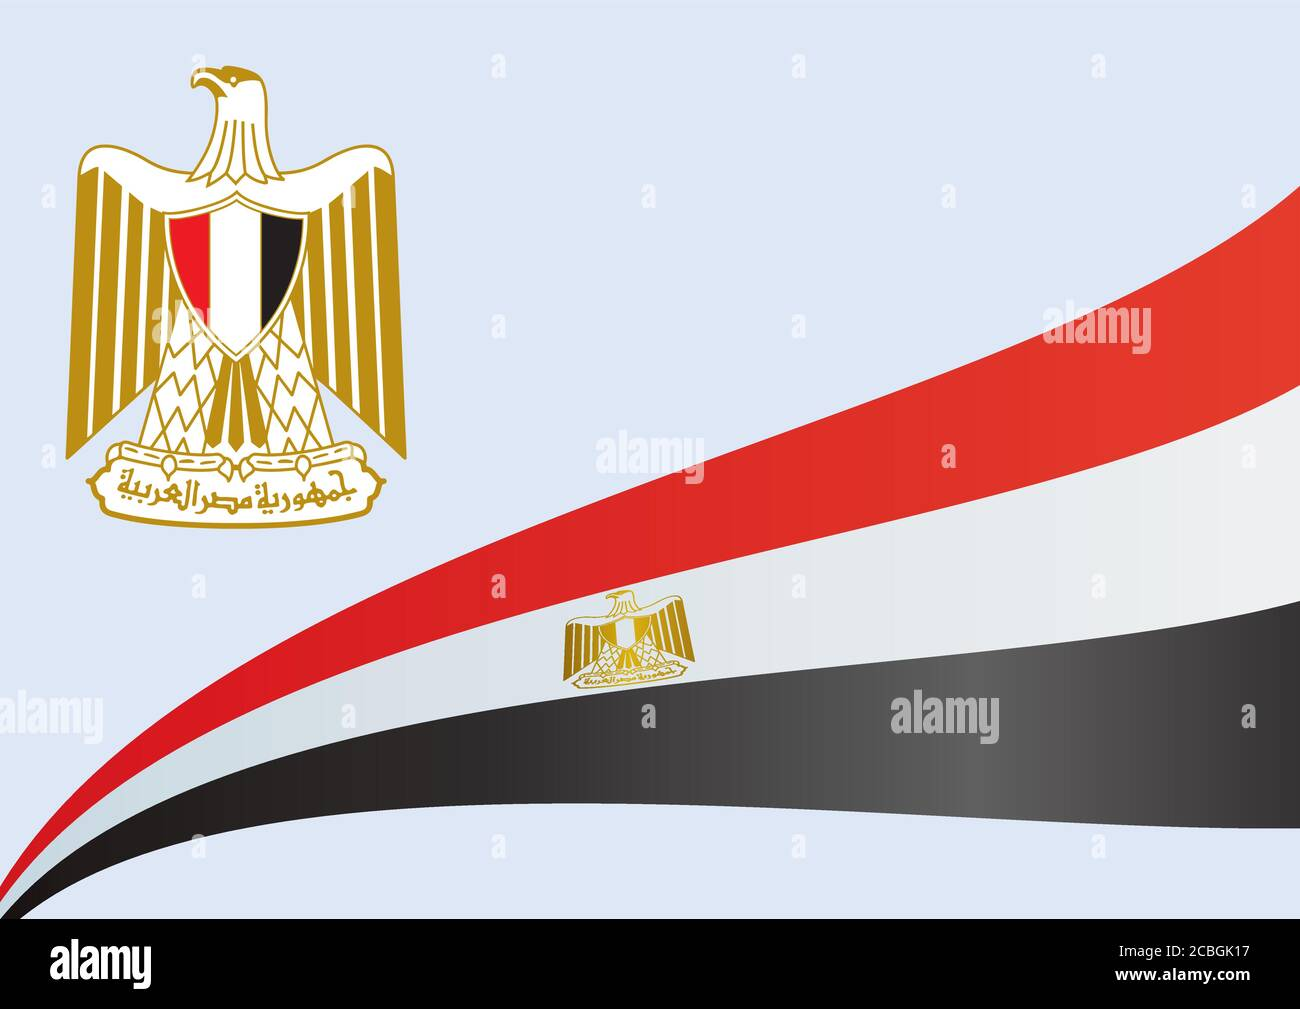 Flag Of Egypt Arab Republic Of Egypt Template For Award Design An Official Document With The Flag Of The Arab Republic Of Egypt Stock Vector Image Art Alamy